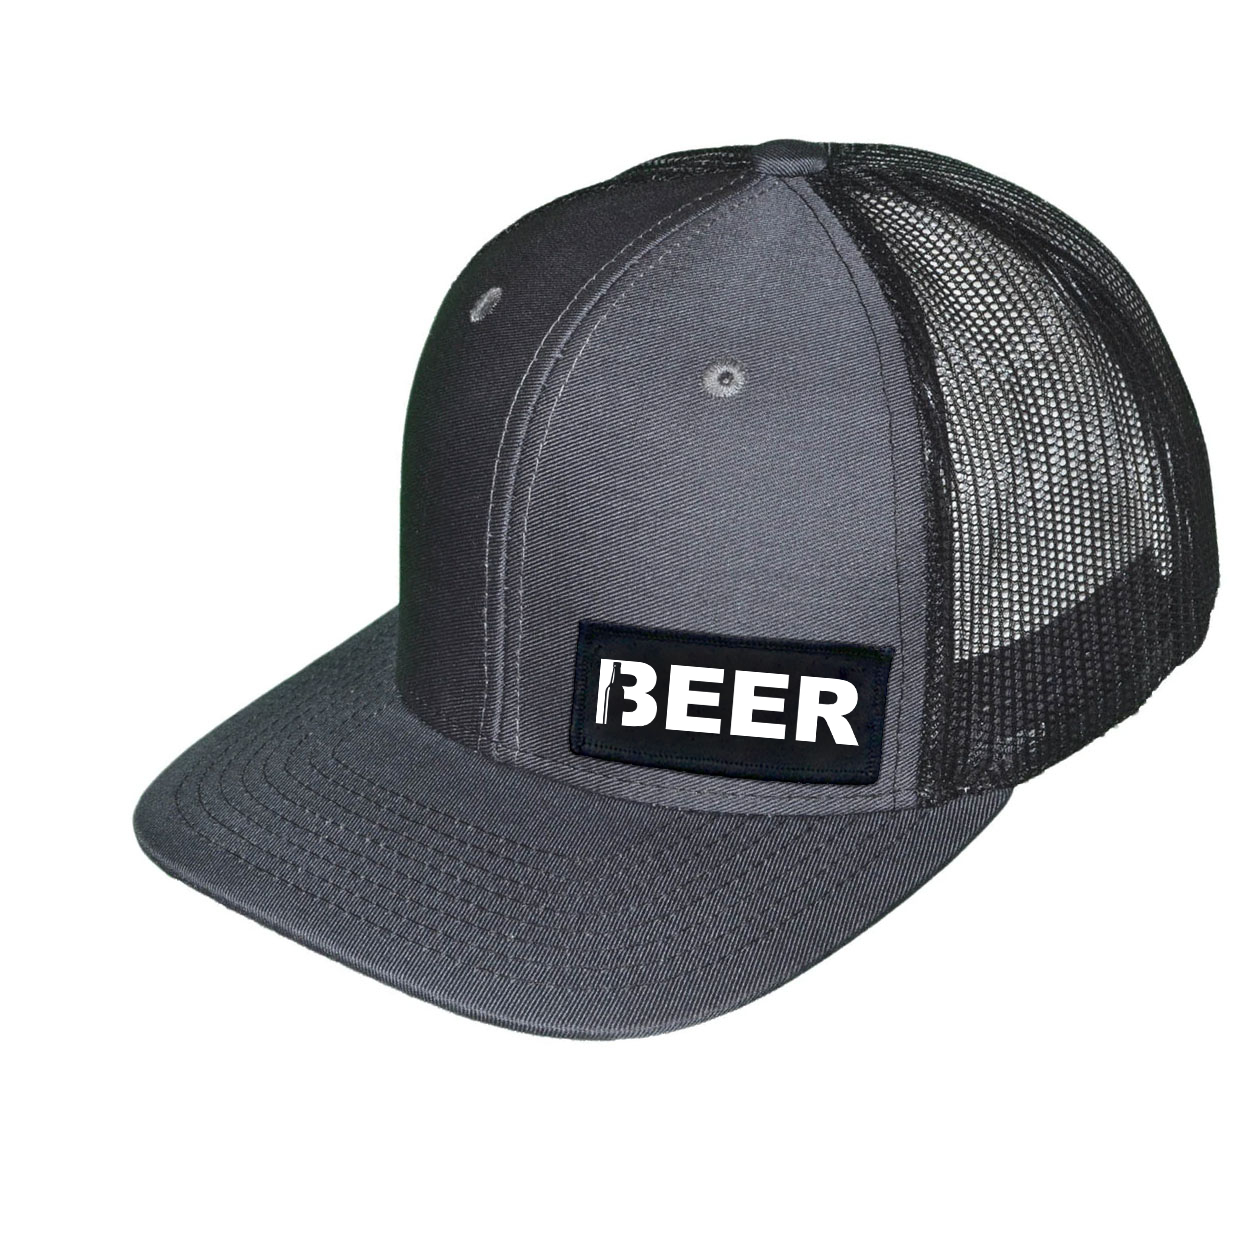 Beer Bottle Logo Night Out Woven Patch Snapback Trucker Hat Dark Gray/Black (White Logo)